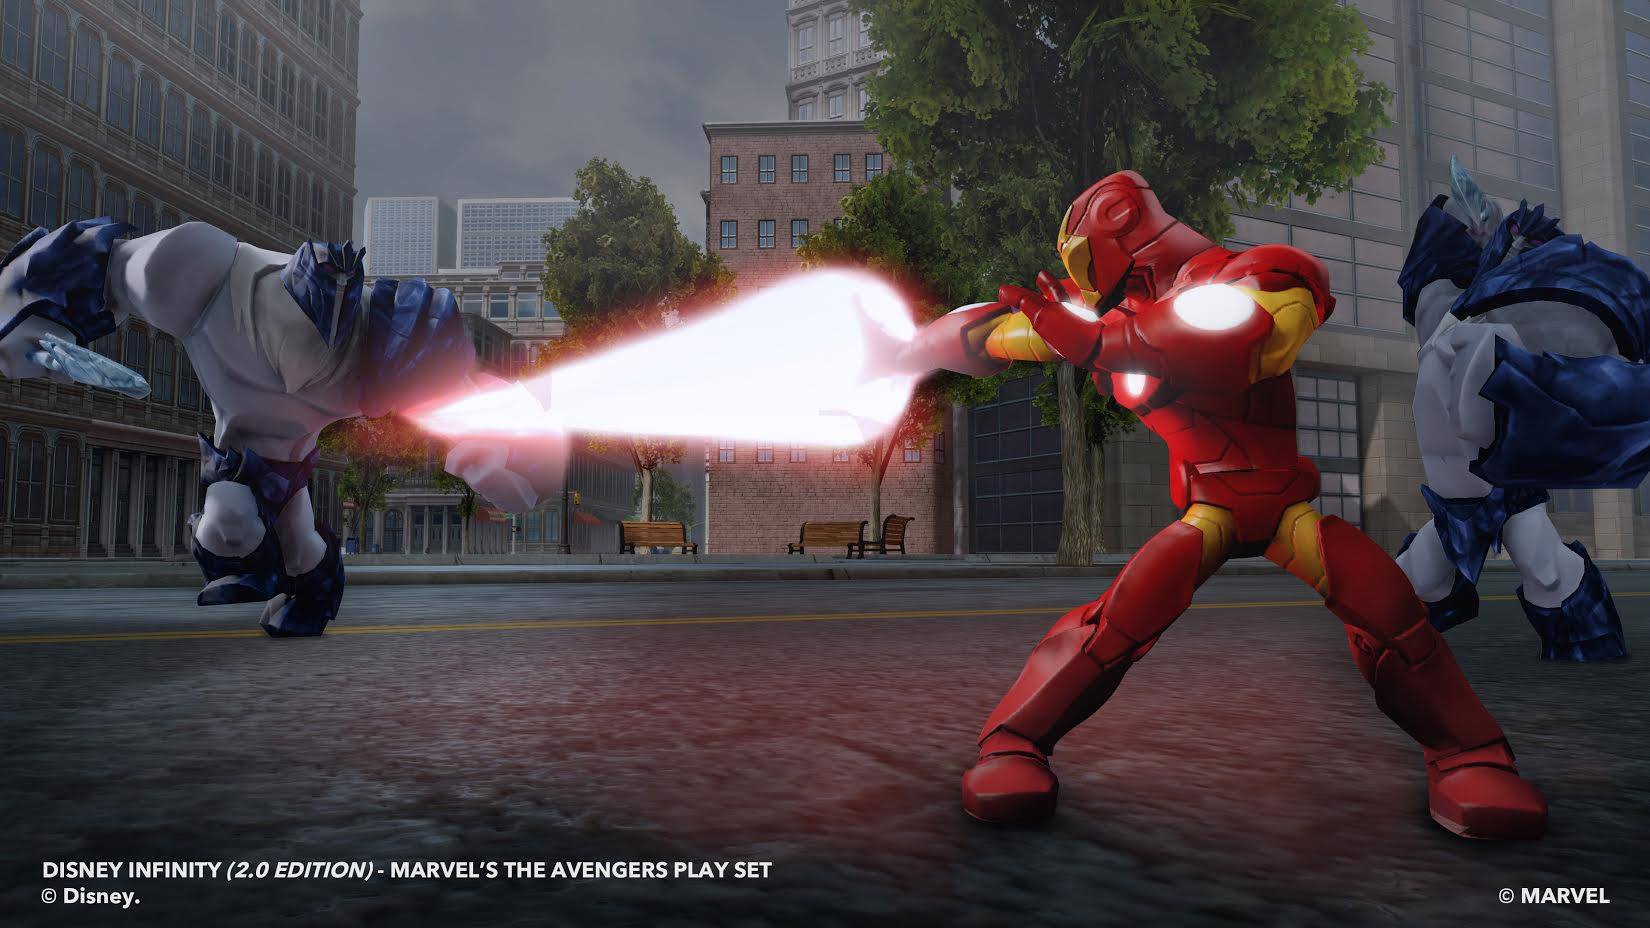 Disney Infinity 2.0 Marvel Super Heroes is real, check it out here!